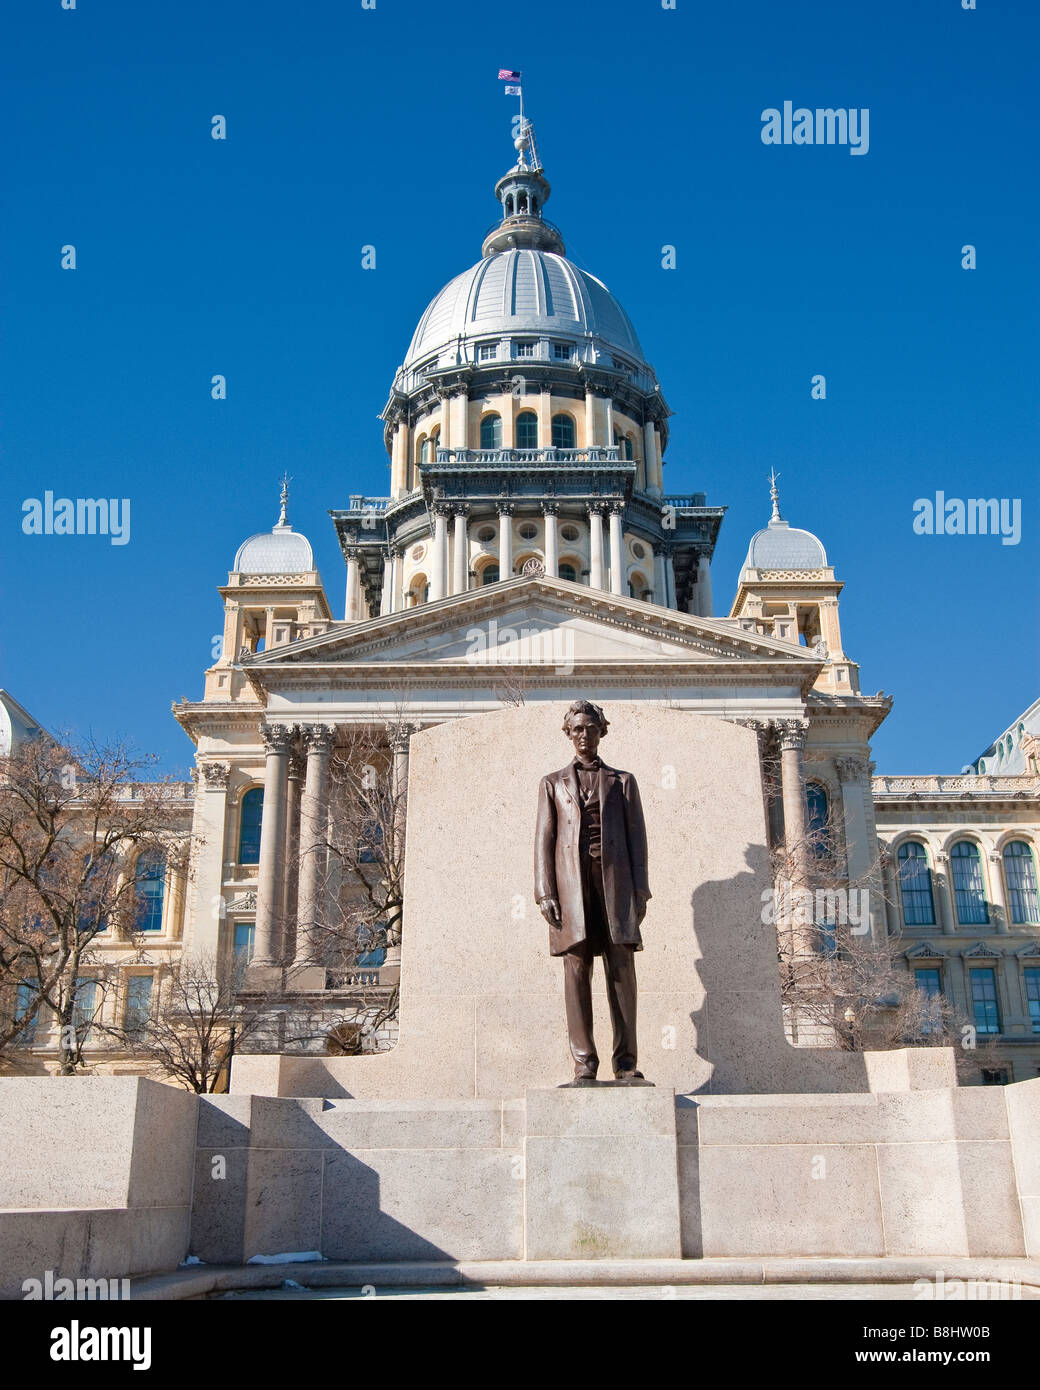 Illinois state capital in Springfield, Illinois with Lincoln statue - Stock Image